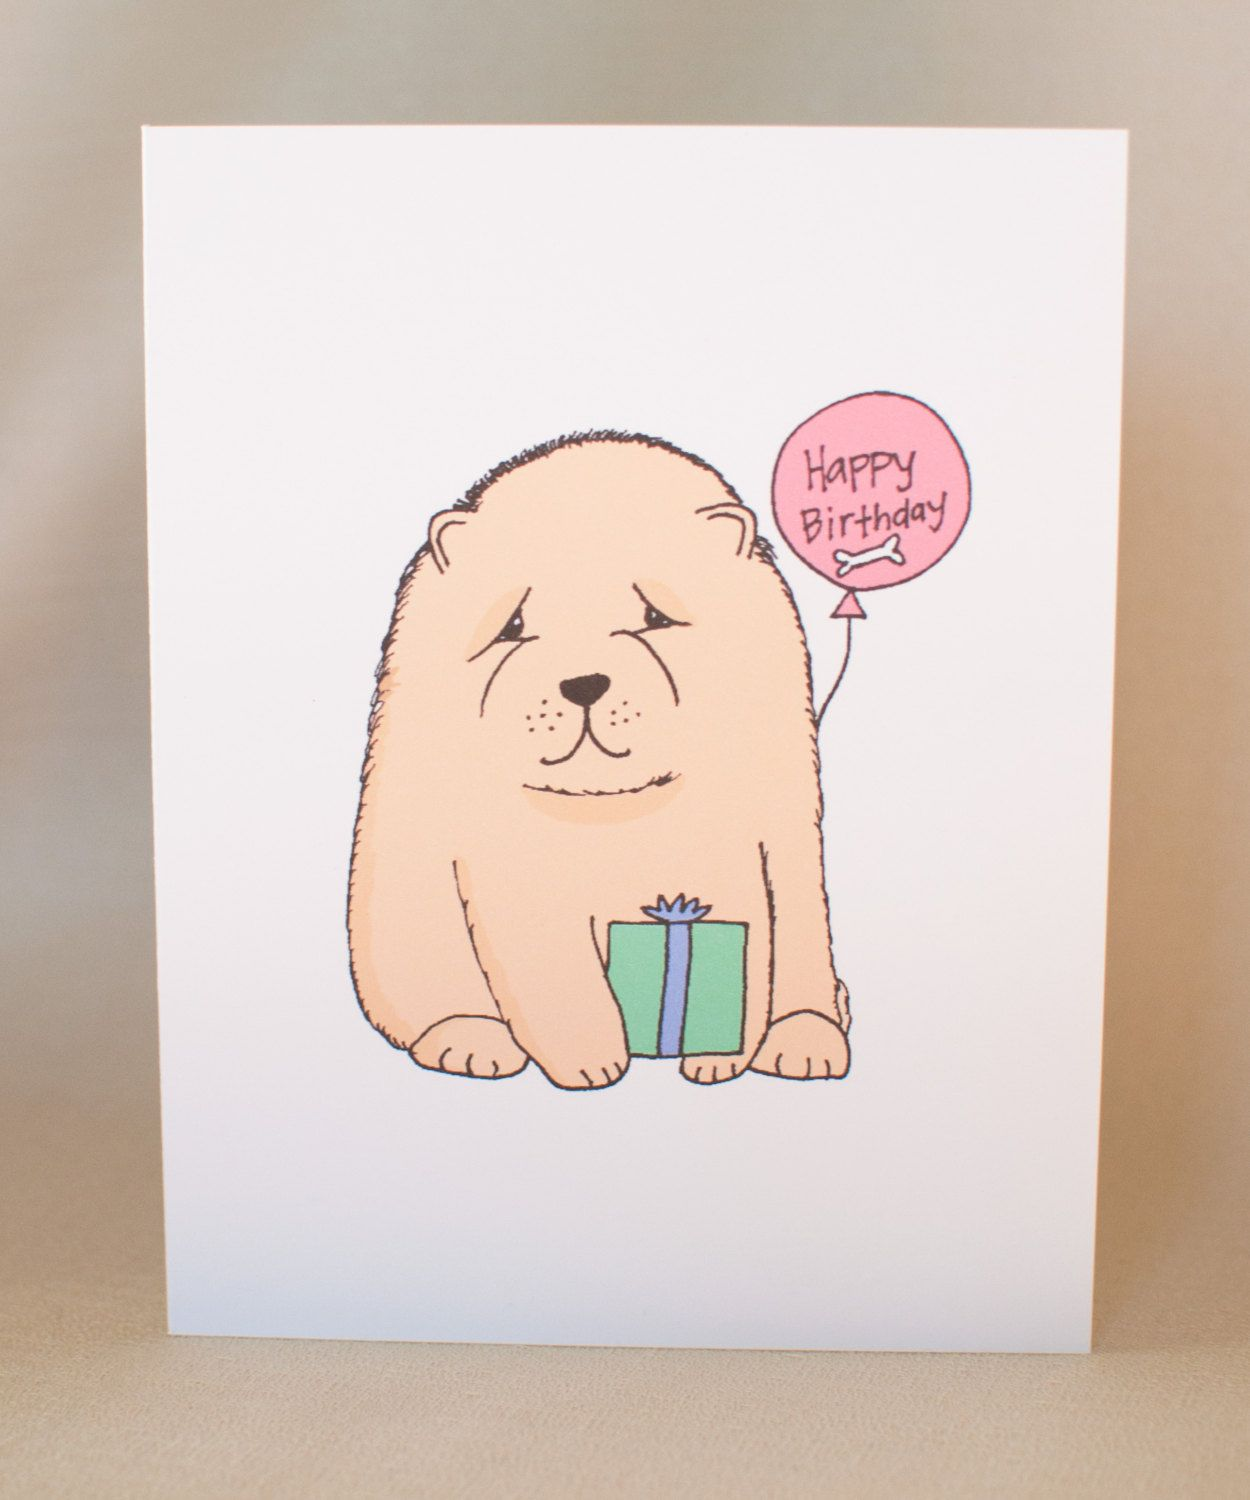 Chow chow puppy birthday card greeting card chow greeting unique chow chow puppy birthday card greeting card chow greeting unique card kawaii kristyandbryce Gallery